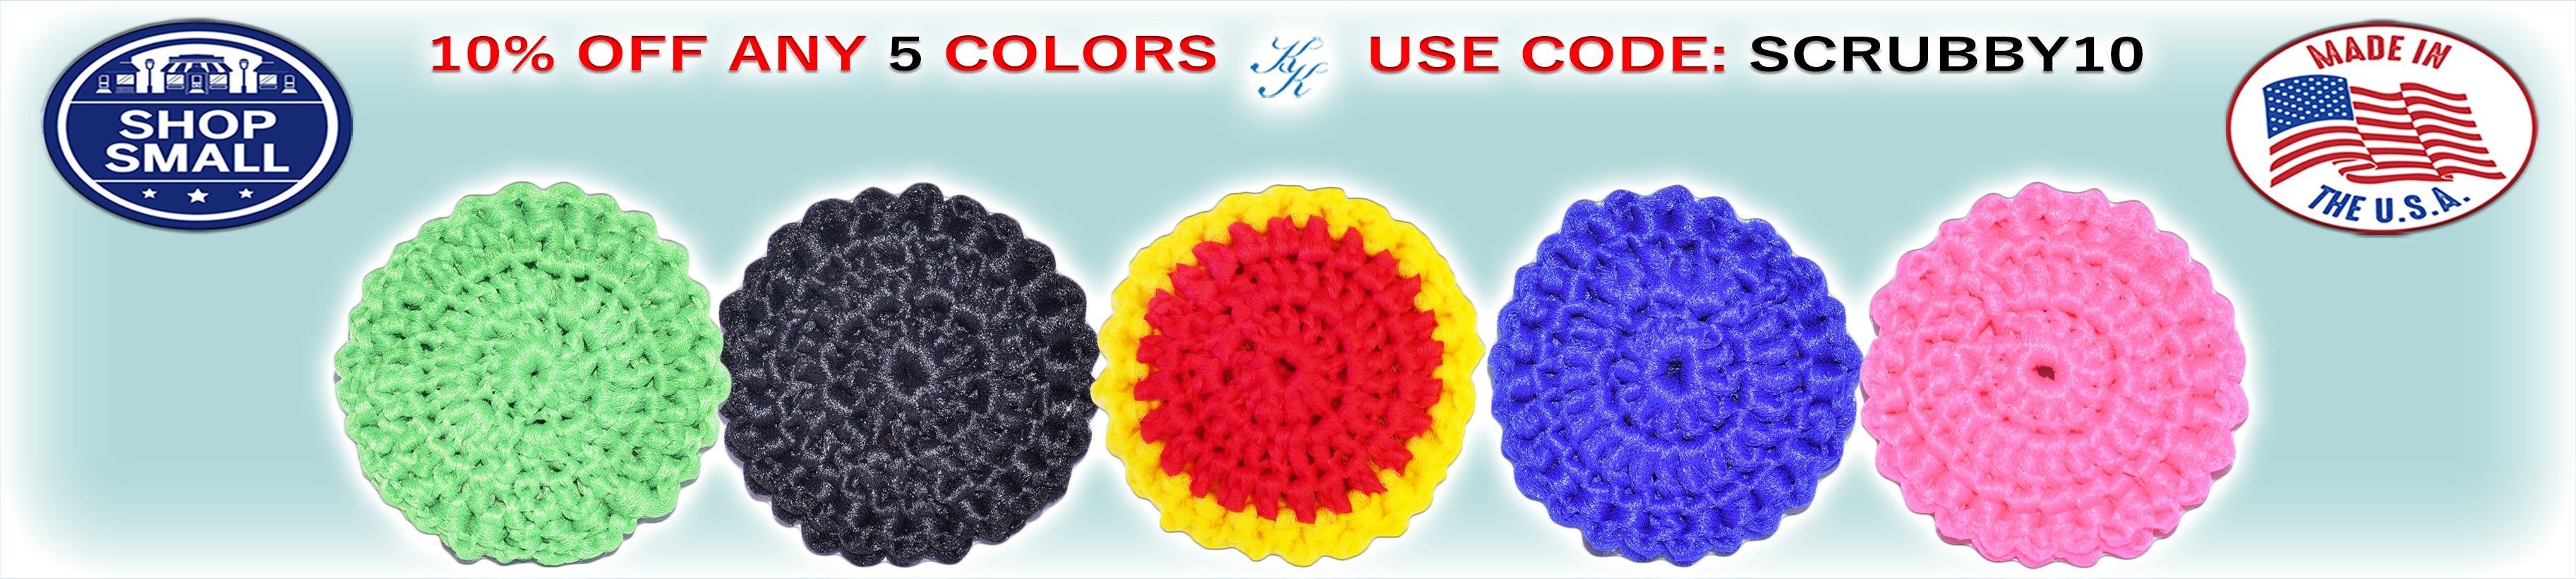 Scrubbies by Karen's Kases, buy 5 of any color and get 10% off, use code: scrubby10!